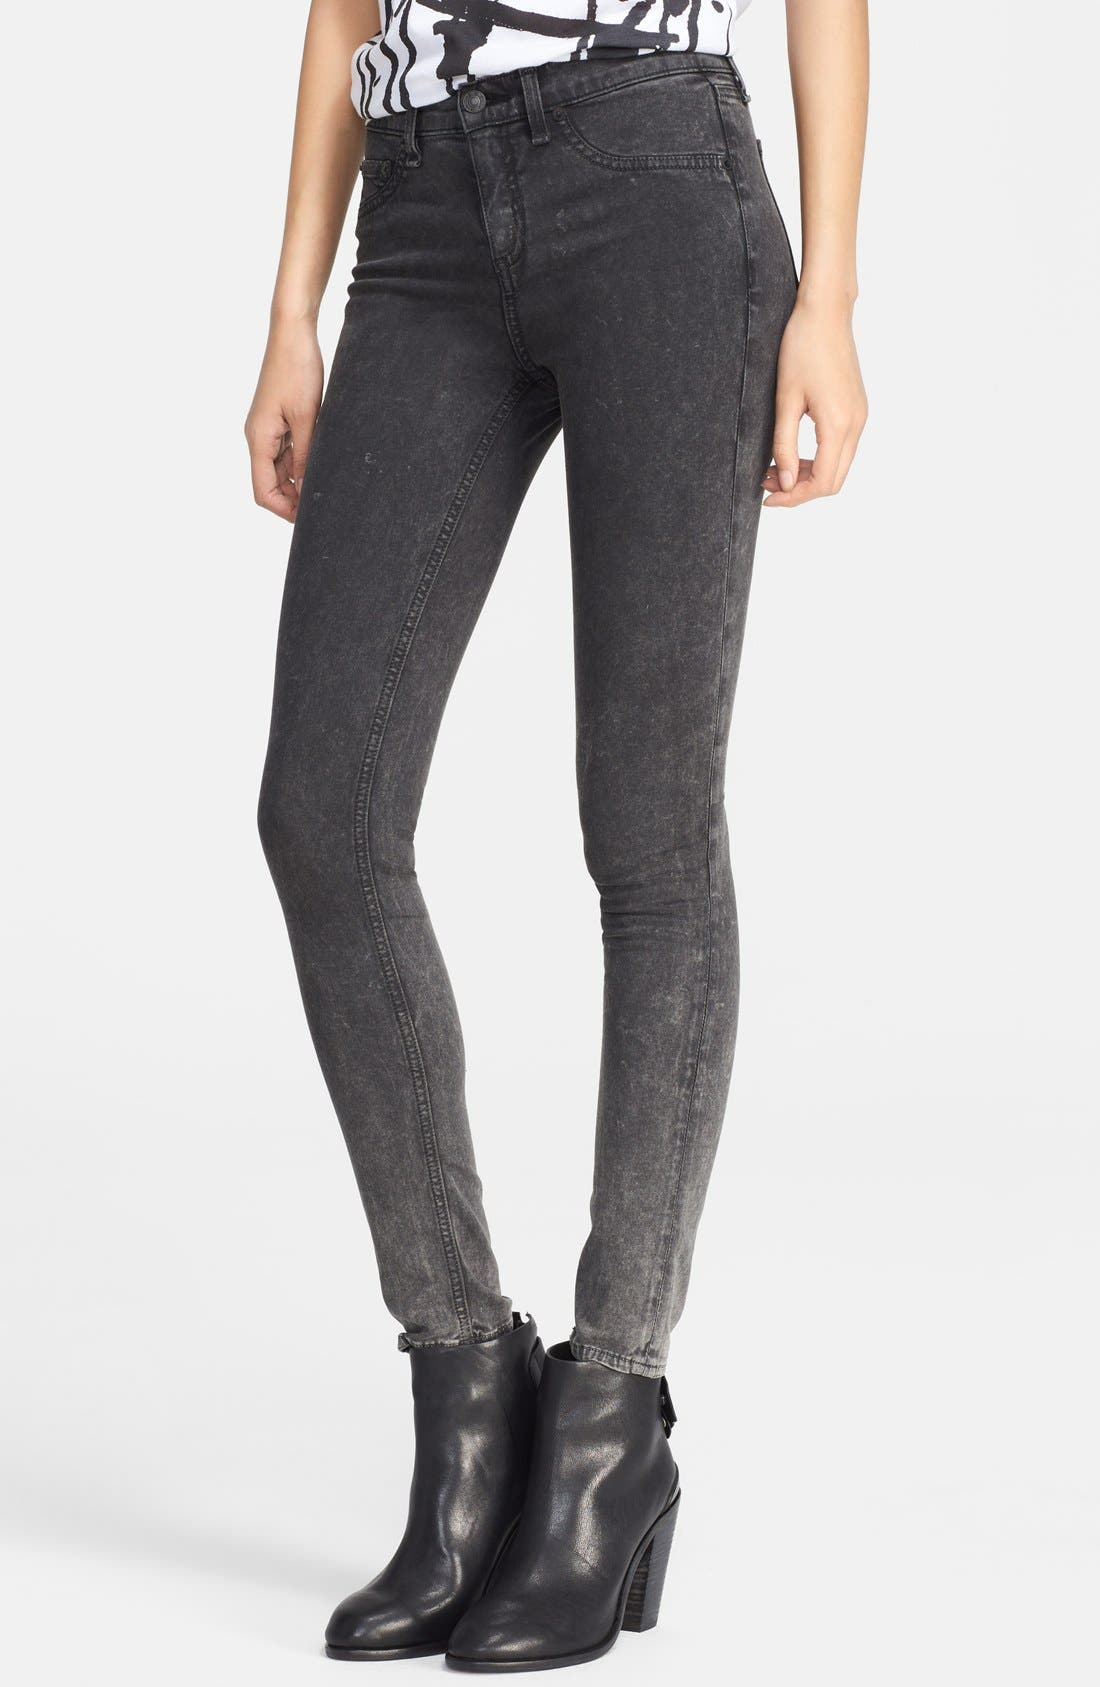 Alternate Image 1 Selected - rag & bone/JEAN 'Justine' High Rise Skinny Jeans (Rosebowl Black)